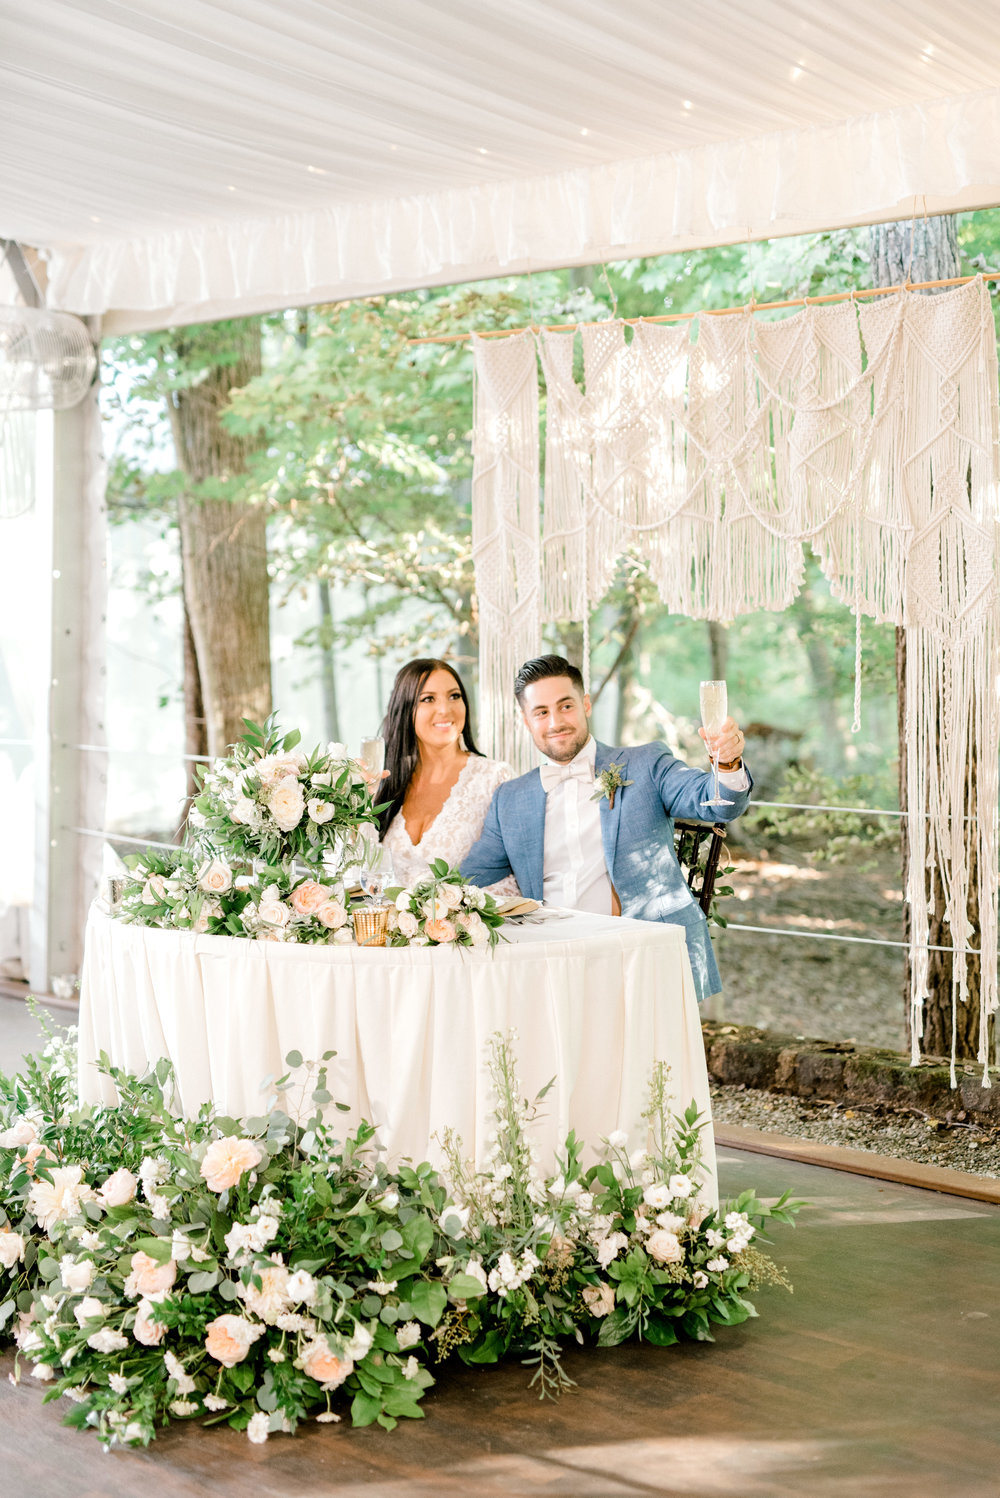 We loved this wild sweetheart table surrounded in whimsical greenery and given a white macrame backdrop from this bright boho chic Tyler Gardens wedding in Bucks County